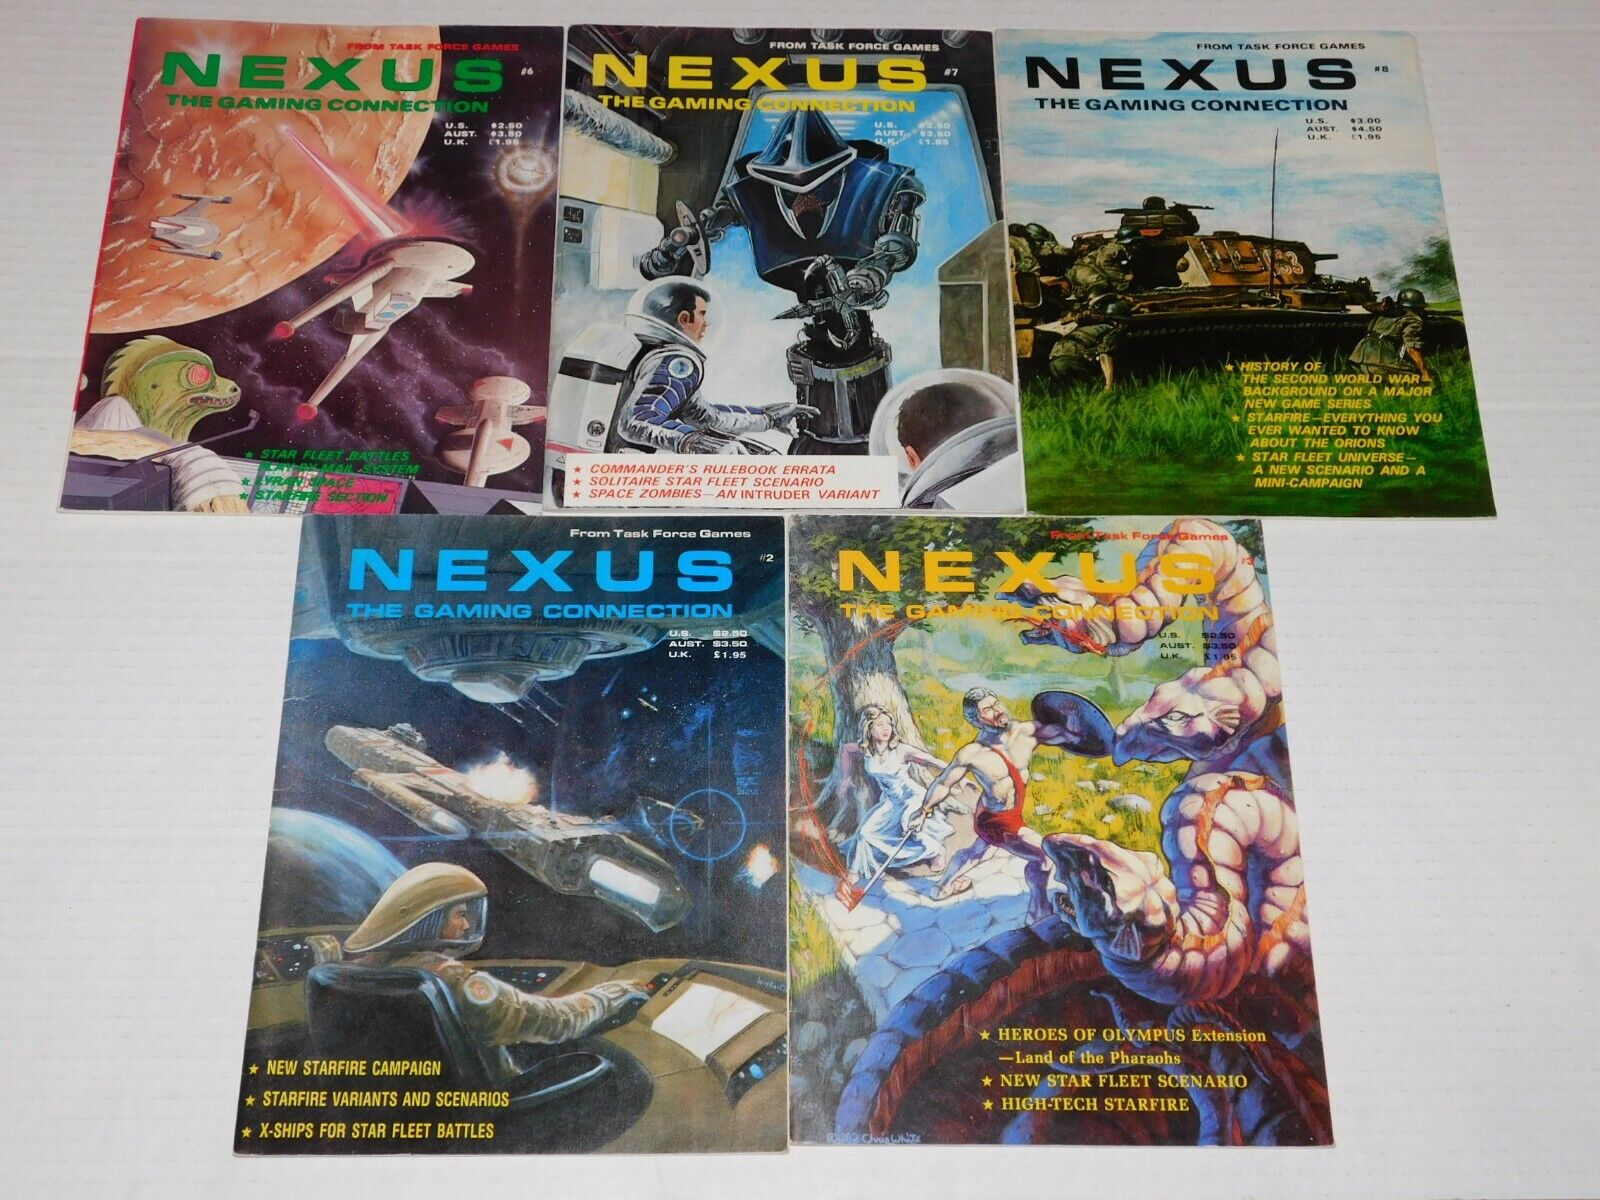 NEXUS Role Playing Gaming Connection Magazine Lot Task Force Games